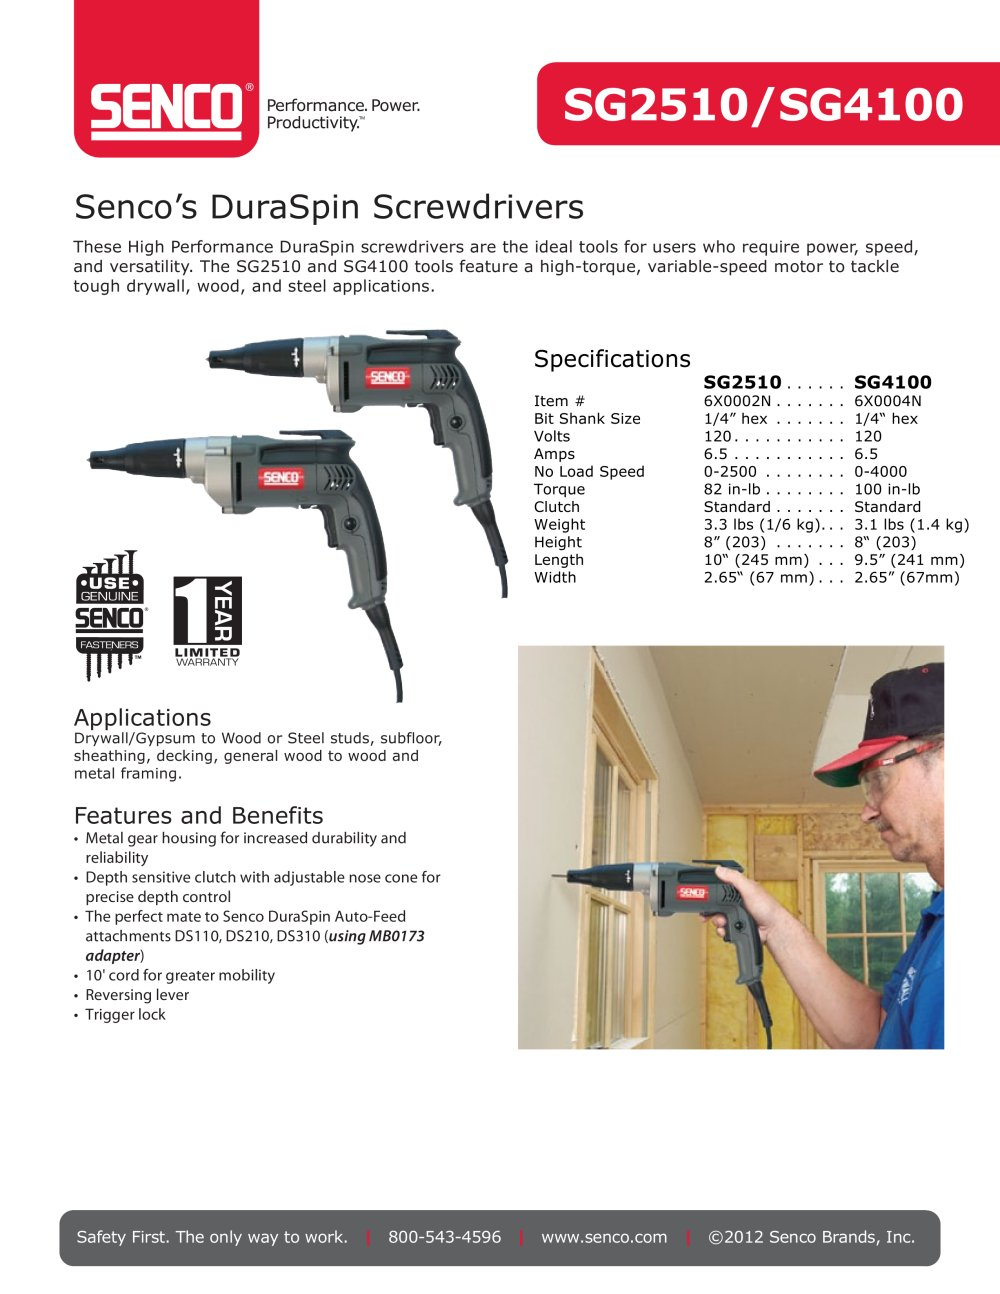 SG2510 Corded 2500 rpm Screwdriver - SENCO - PDF Catalogue ...